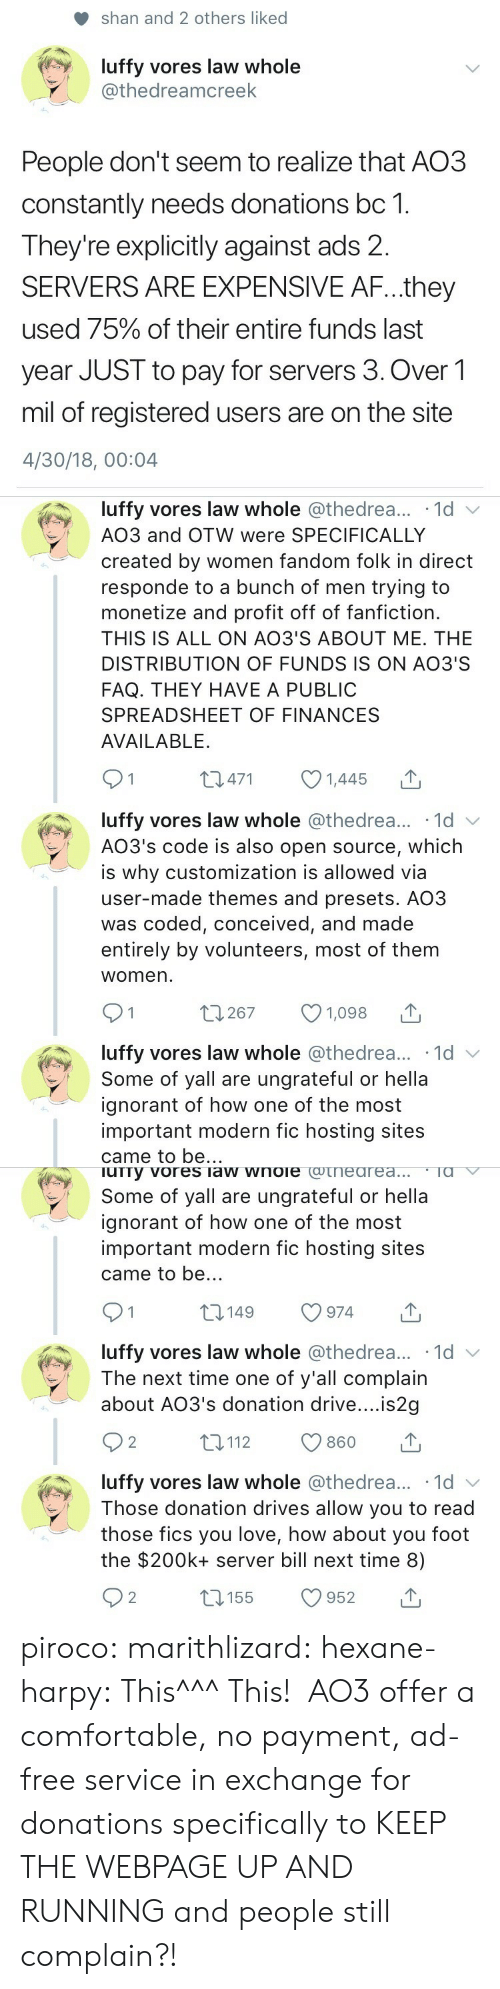 Af, Comfortable, and Fanfiction: shan and 2 others liked  luffy vores law whole  @thedreamcreek  People don't seem to realize that AO3  constantly needs donations bc 1.  Theyre explicitly against ads 2.  SERVERS ARE EXPENSIVE AF...they  used 75% of their entire funds last  year JUST to pay for servers 3. Over1  mil of registered users are on the site  4/30/18, 00:04   luffy vores law whole @thedrea... 1d v  AO3 and OTW were SPECIFICALLY  created by women fandom folk in direct  responde to a bunch of men trying to  monetize and profit off of fanfiction.  THIS IS ALL ON AO3'S ABOUT ME. THE  DISTRIBUTION OF FUNDS IS ON AO3'S  FAQ. THEY HAVE A PUBLIC  SPREADSHEET OF FINANCES  AVAILABLE.  01 0471 1445  luffy vores law whole @thedrea... 1d  AO3's code is also open source, which  is why customization is allowed via  user-made themes and presets. AO3  was coded, conceived, and made  entirely by volunteers, most of them  womern  luffy vores law whole @thedrea... 1d  Some of yall are ungrateful or hella  ignorant of how one of the most  important modern fic hosting sites  came to be..   urry vores law wnoie cotneareaTa  Some of yall are ungrateful or hella  ignorant of how one of the most  important modern fic hosting sites  came to be..  t0149 974  luffy vores law whole @thedrea... 1d v  The next time one of y'all complain  about AO3's donation drive....is2g  92 t112 860 T  luffy vores law whole @thedrea... 1d  Those donation drives allow you to read  those fics you love, how about you foot  the $200k+ server bill next time 8) piroco: marithlizard:  hexane-harpy: This^^^ This!  AO3 offer a comfortable, no payment, ad-free service in exchange for donations specifically to KEEP THE WEBPAGE UP AND RUNNING and people still complain?!